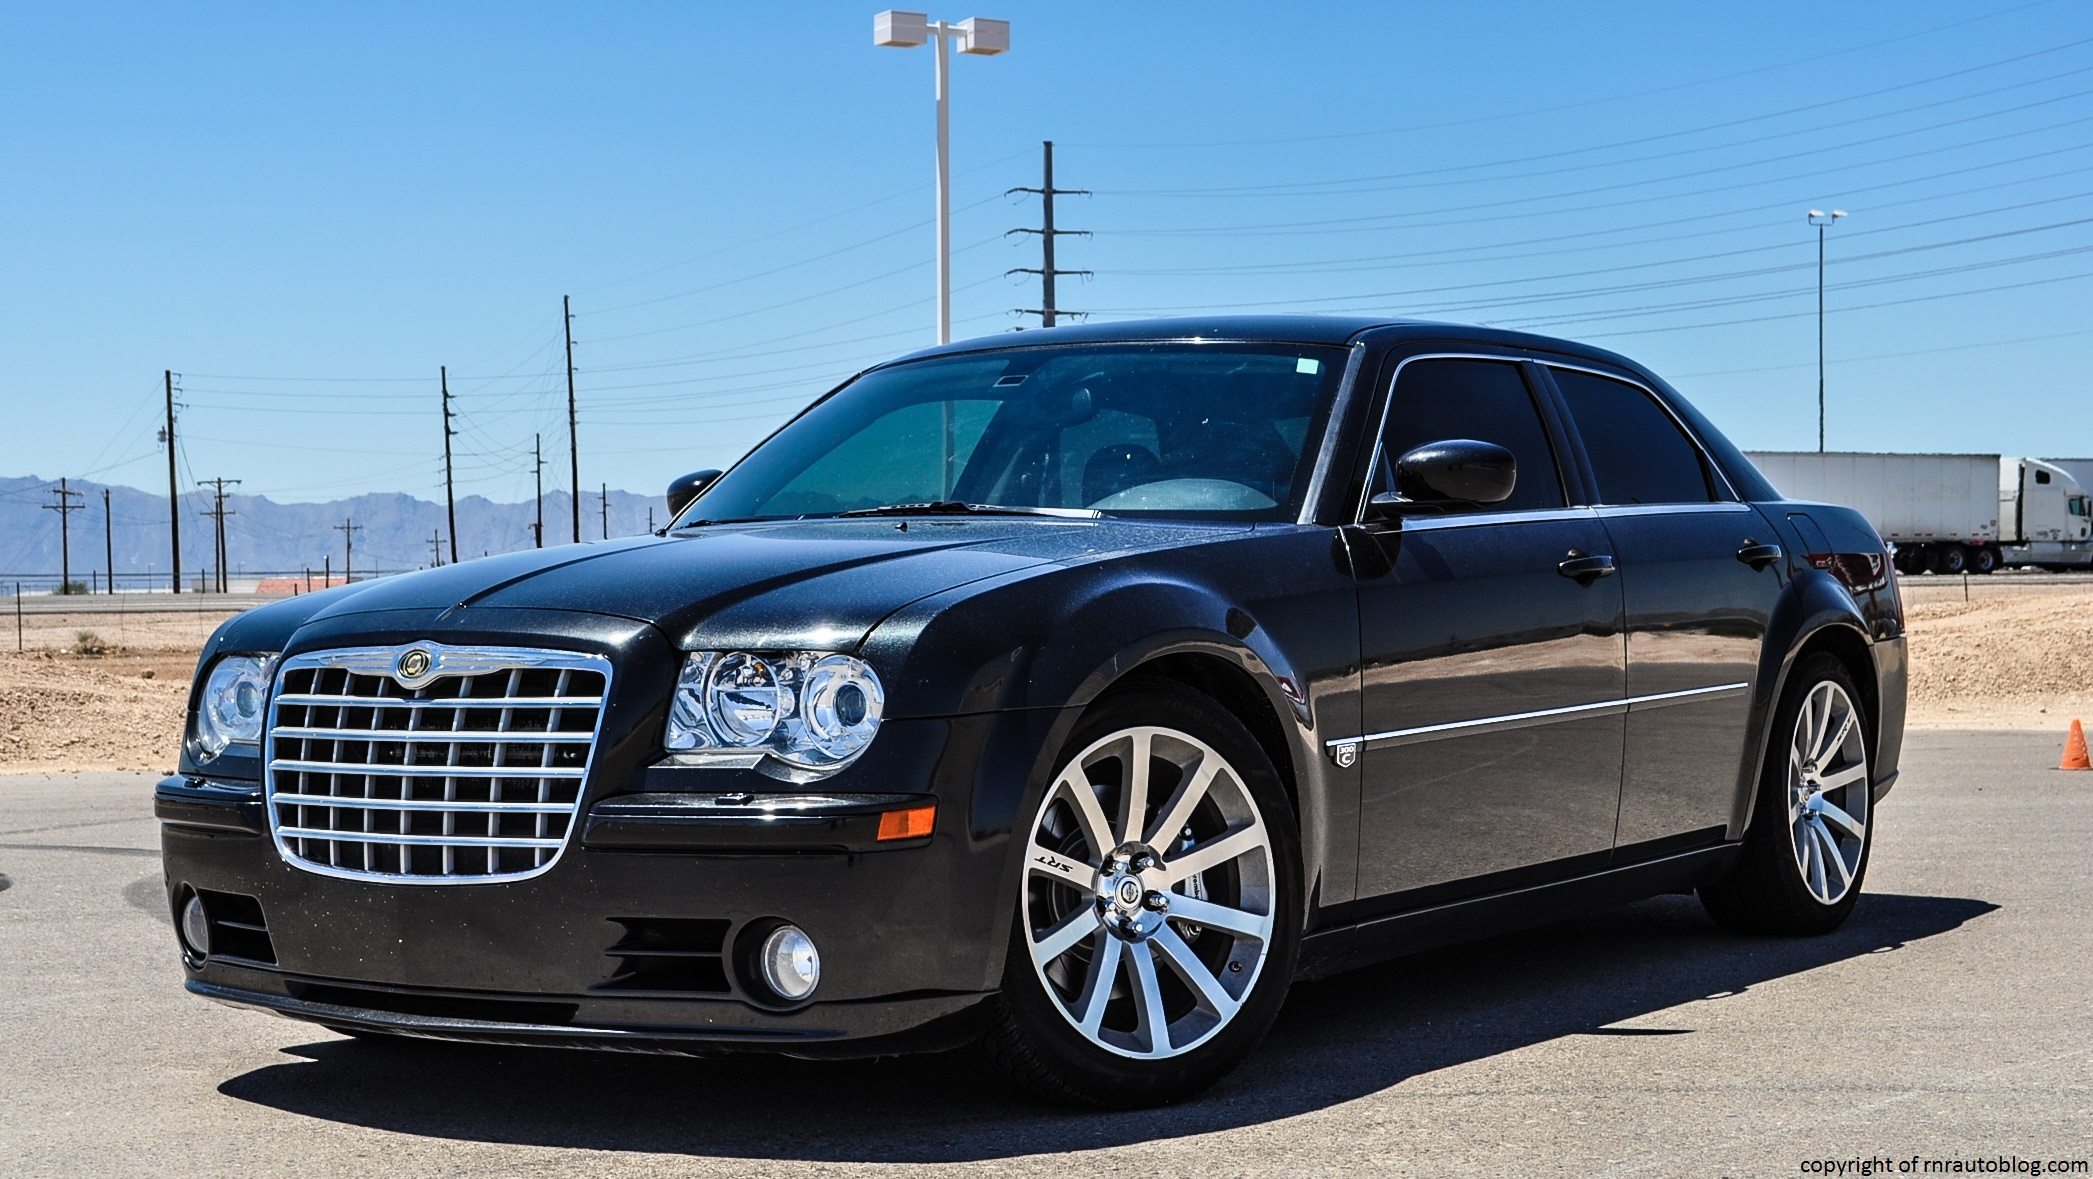 2006 Chrysler 300 Srt8 Review Rnr Automotive Blog